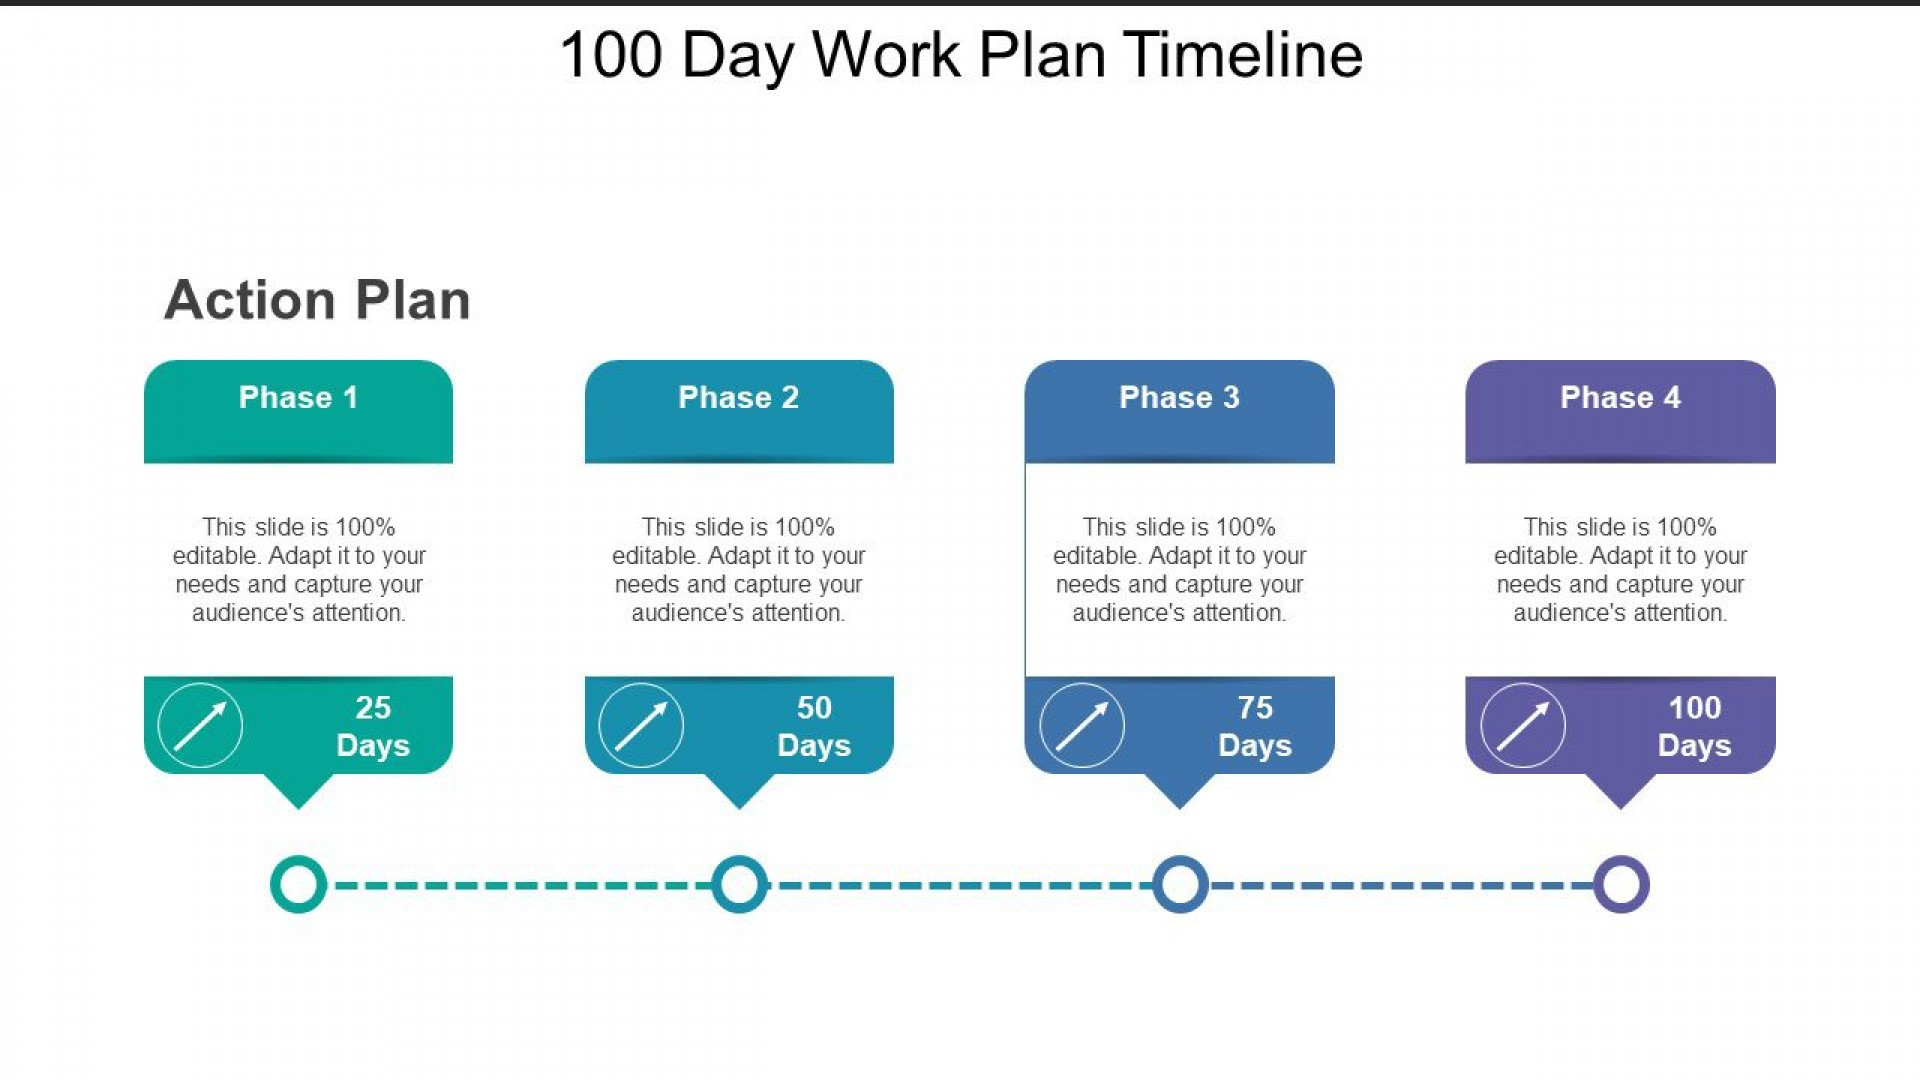 005 Awful 100 Day Planning Template Image  Plan Powerpoint Free New Job Example1920